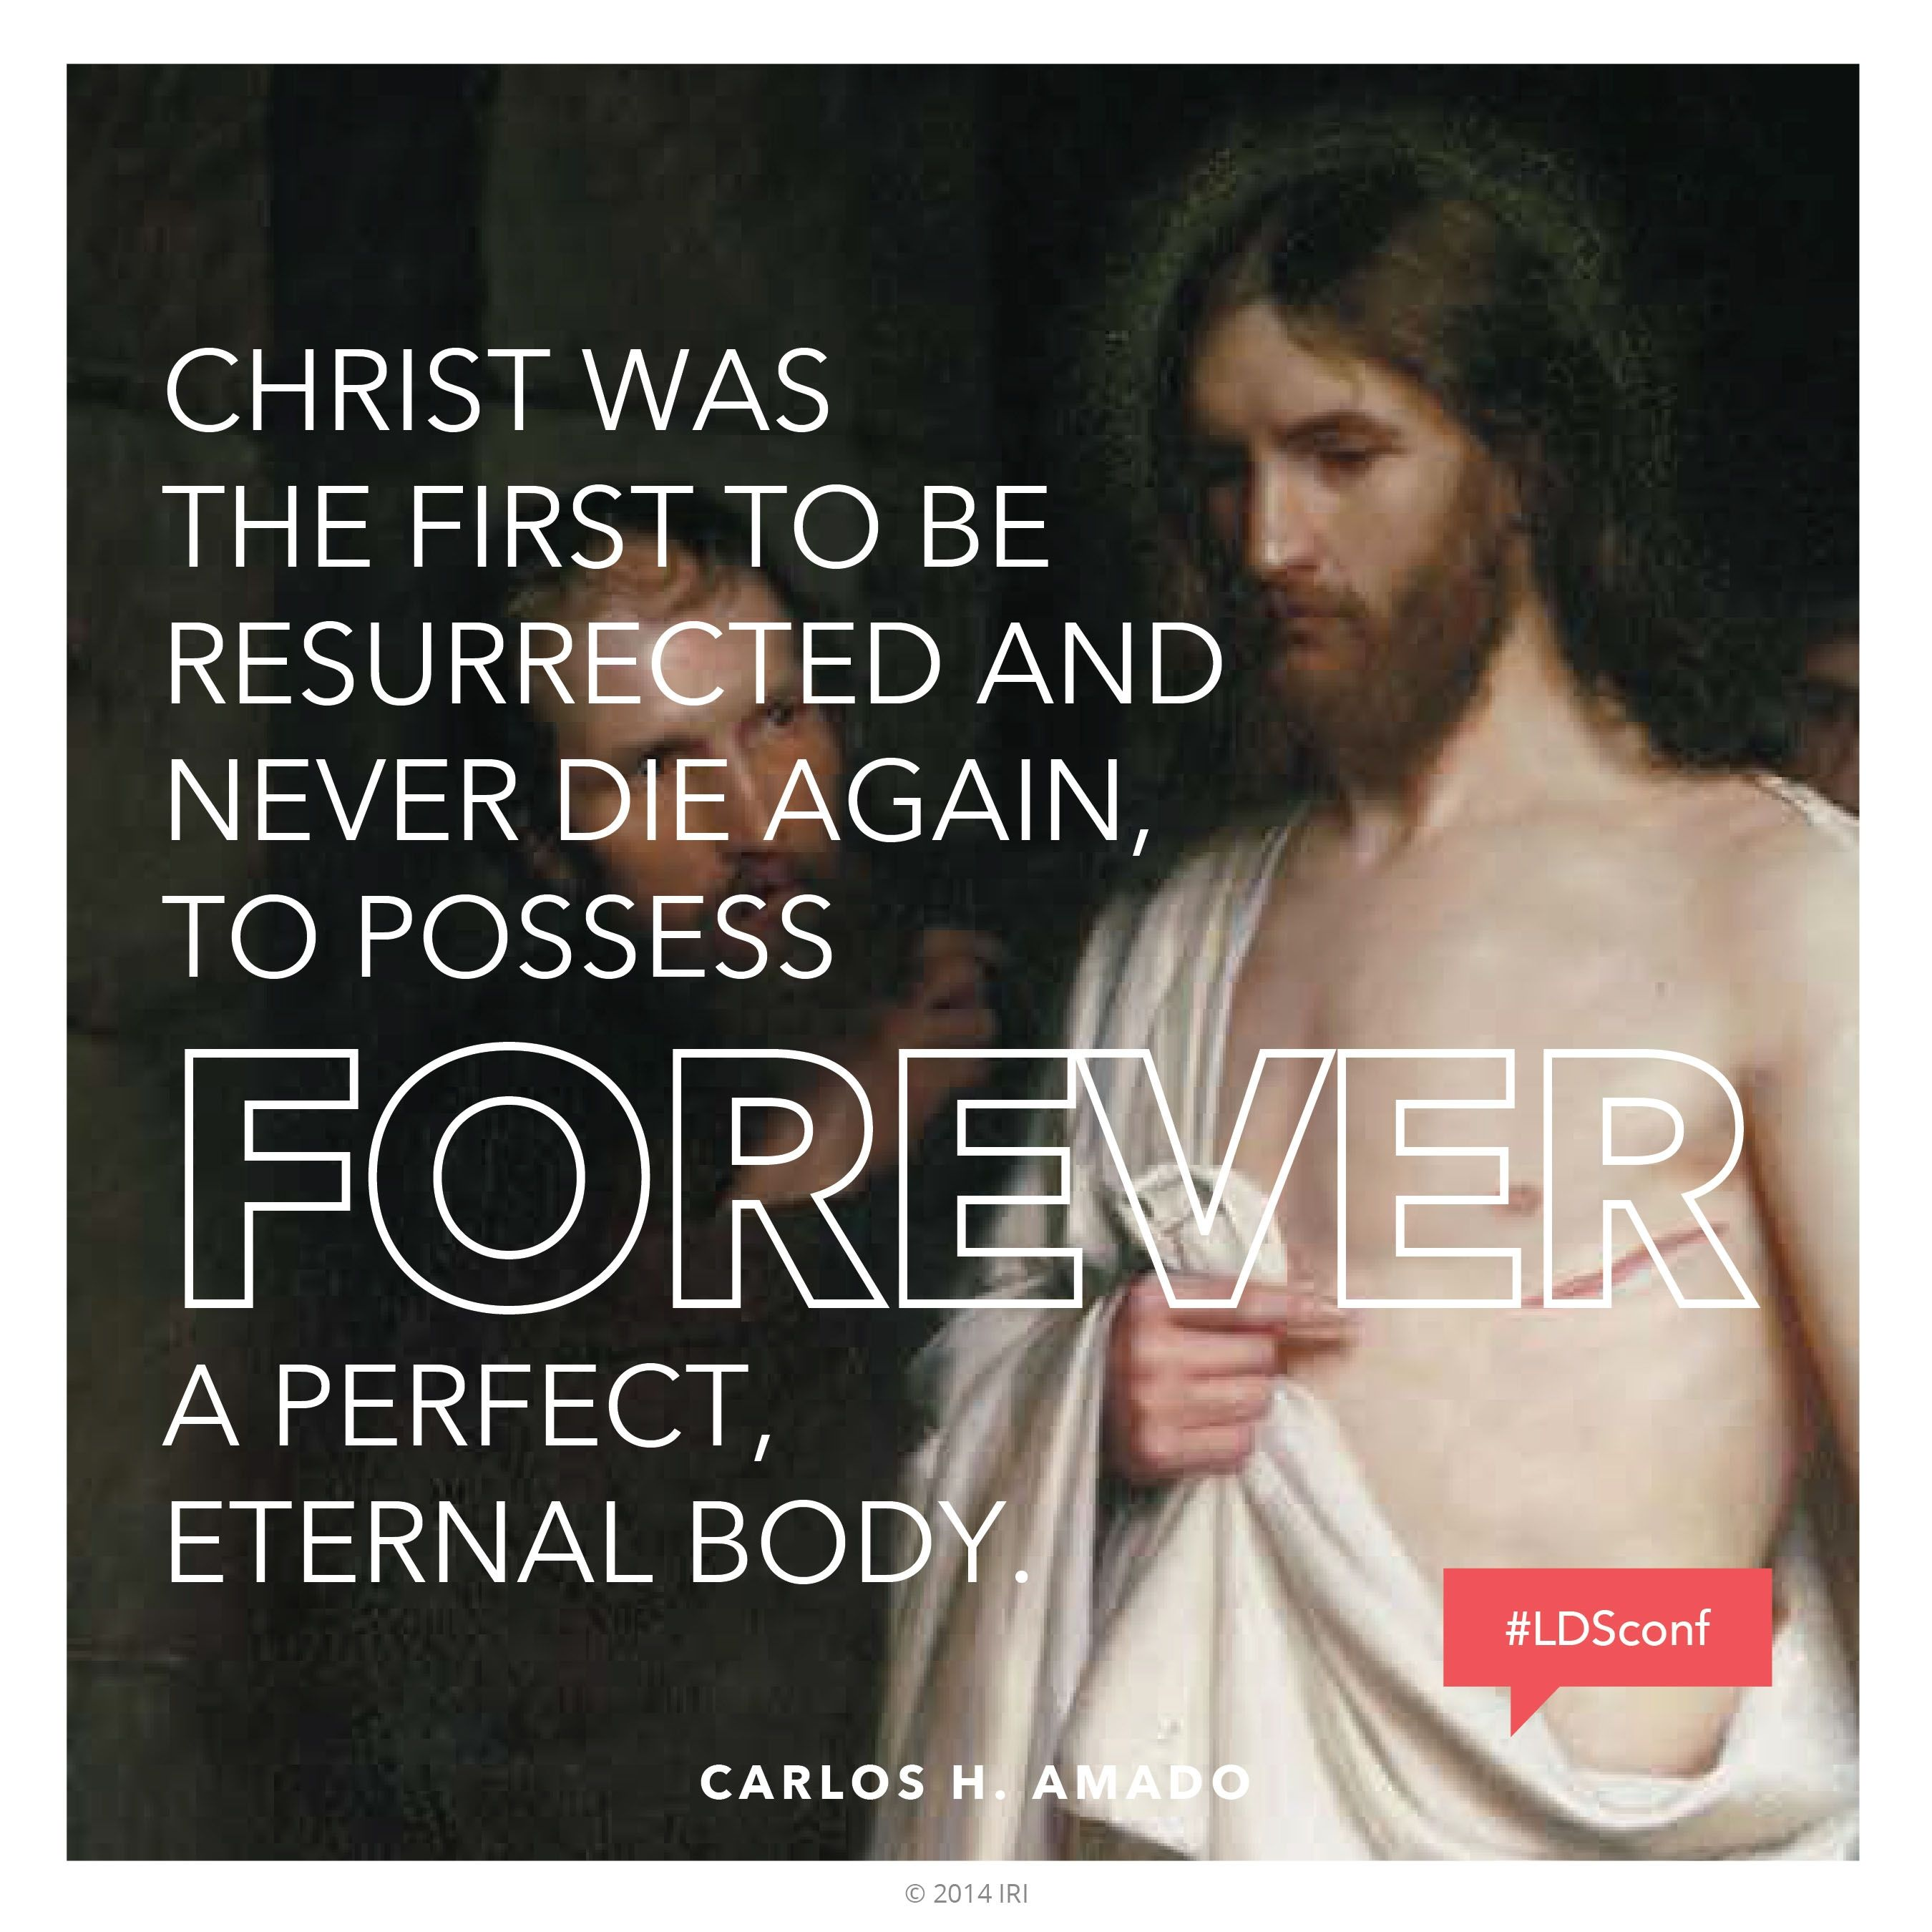 """""""Christ was the first to be resurrected and never die again, to possess forever a perfect, eternal body.""""—Elder Carlos H. Amado, """"Christ the Redeemer"""""""